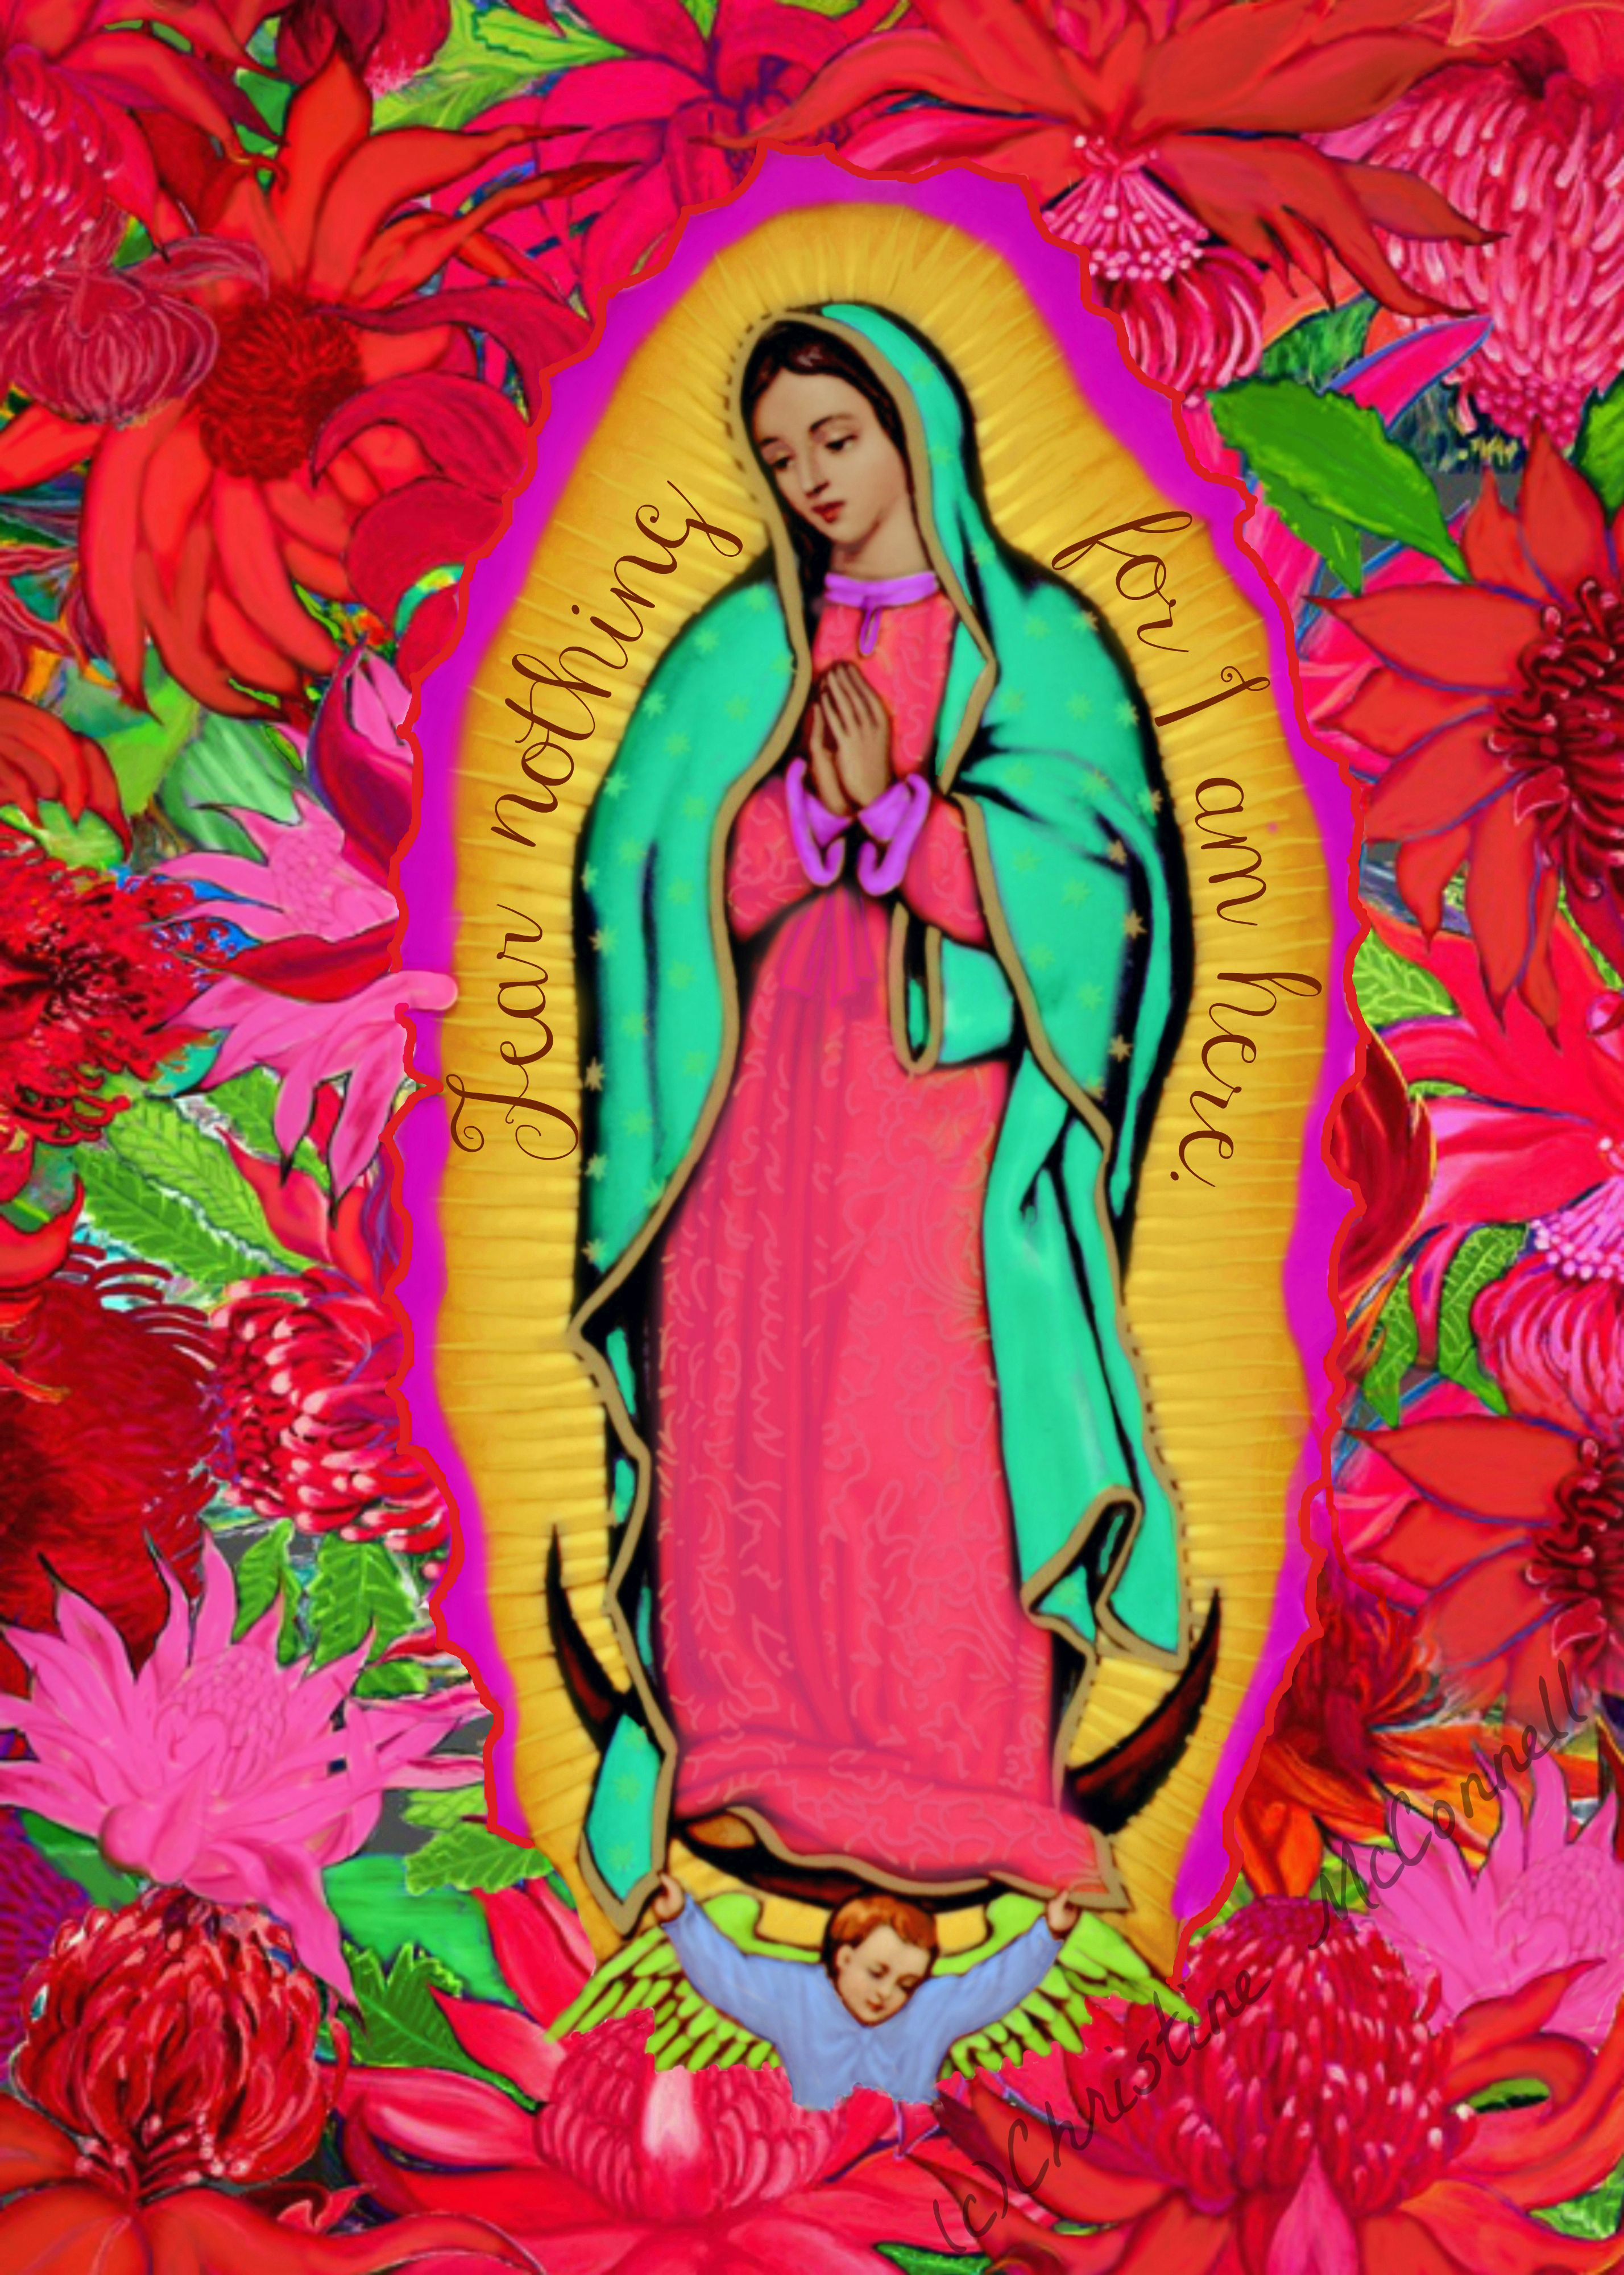 Our Lady Of Guadalupe Art Print From Tdecadencesy